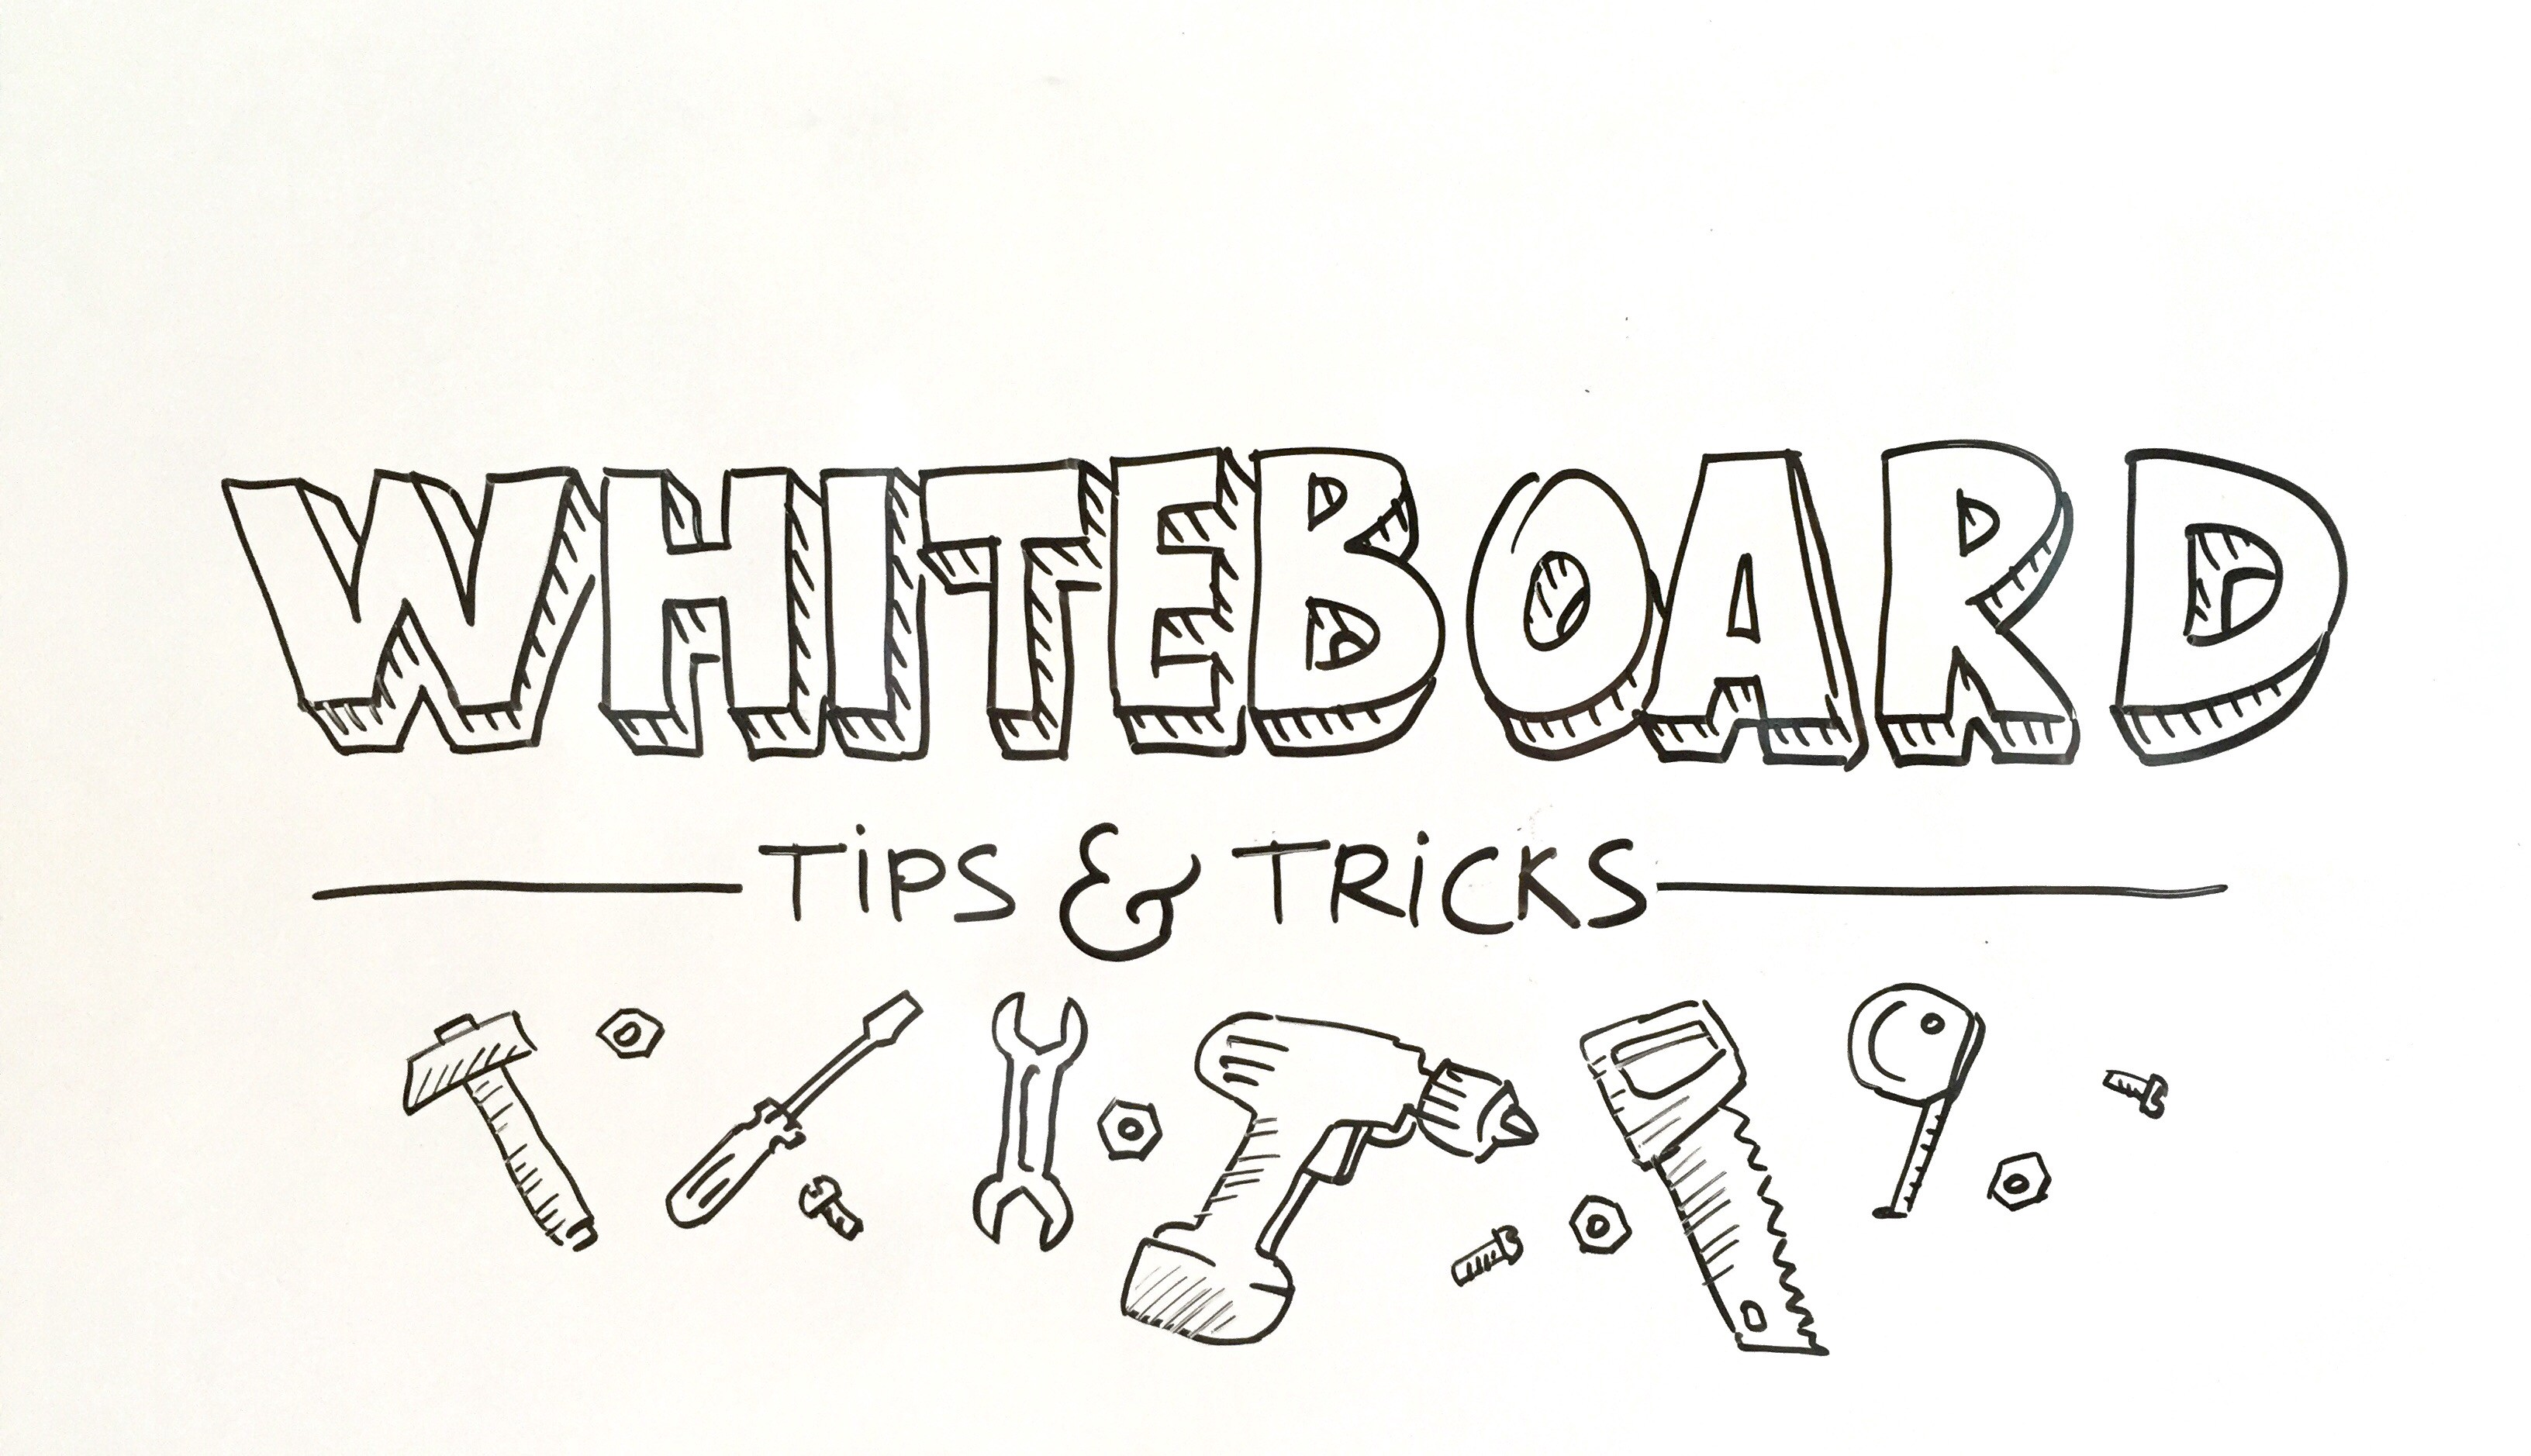 Whiteboard tips and tricks. Over the past several years I